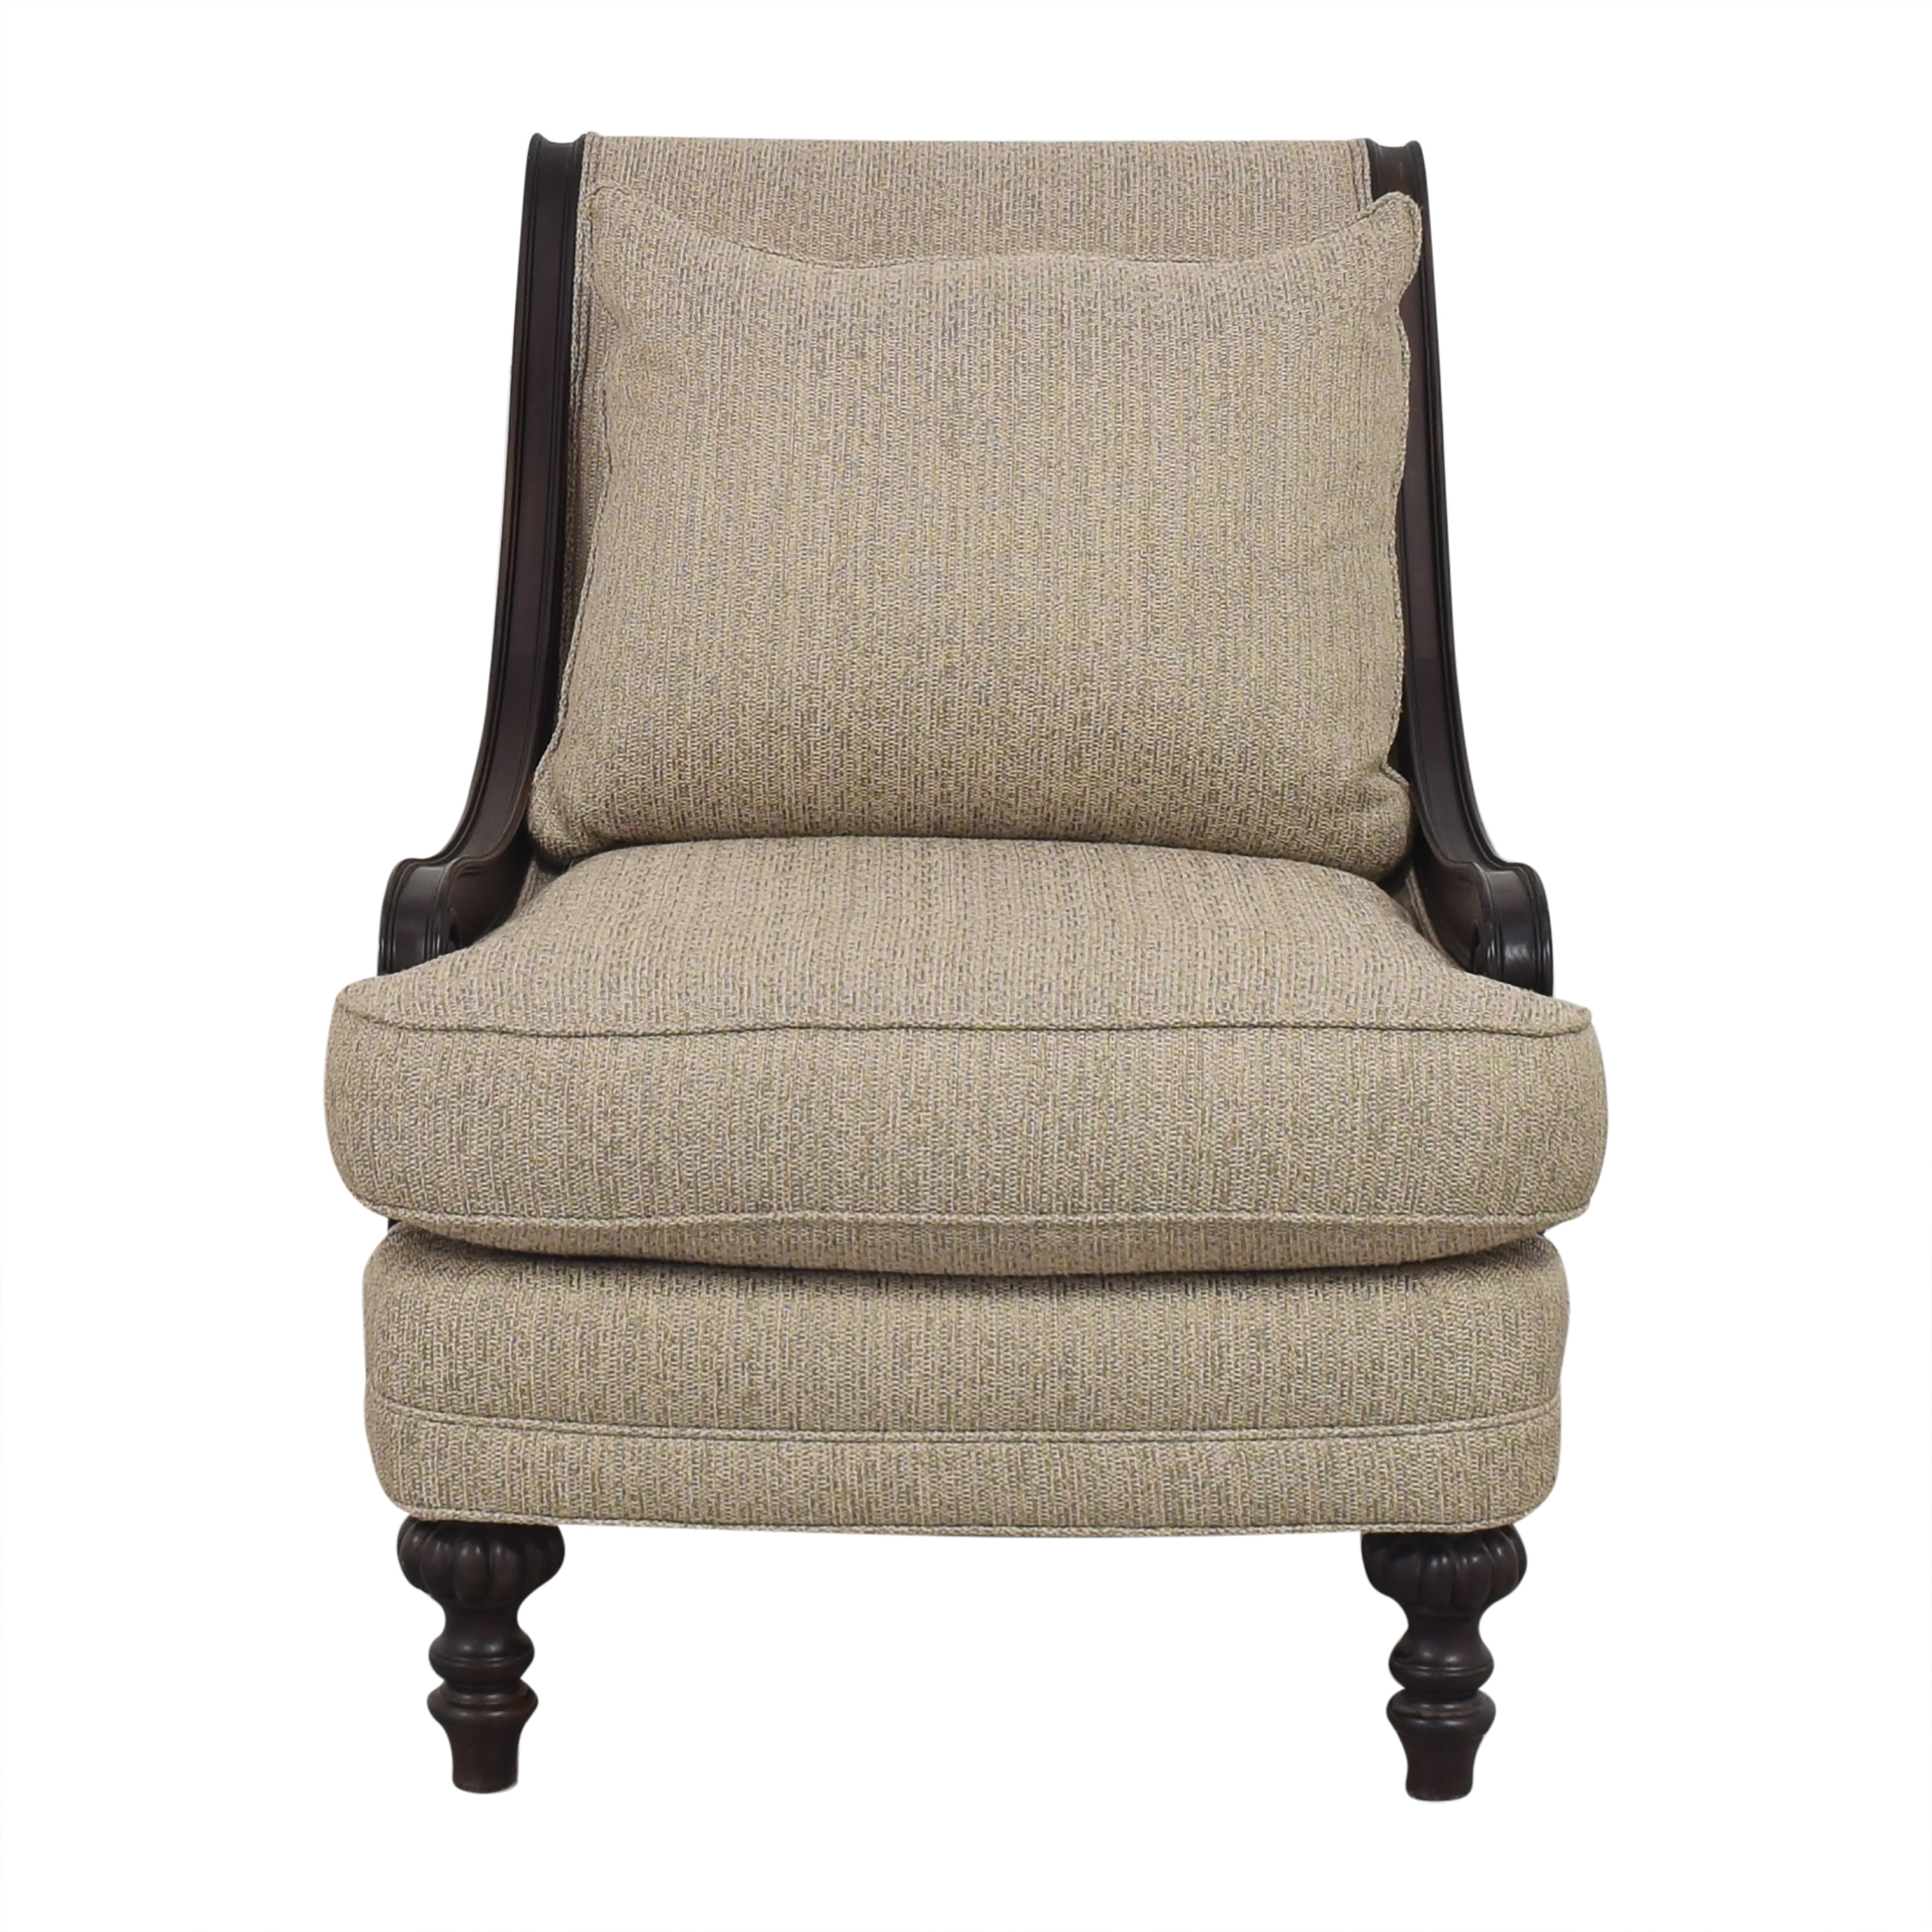 Drexel Heritage Drexel Heritage Basilia Accent Chair for sale